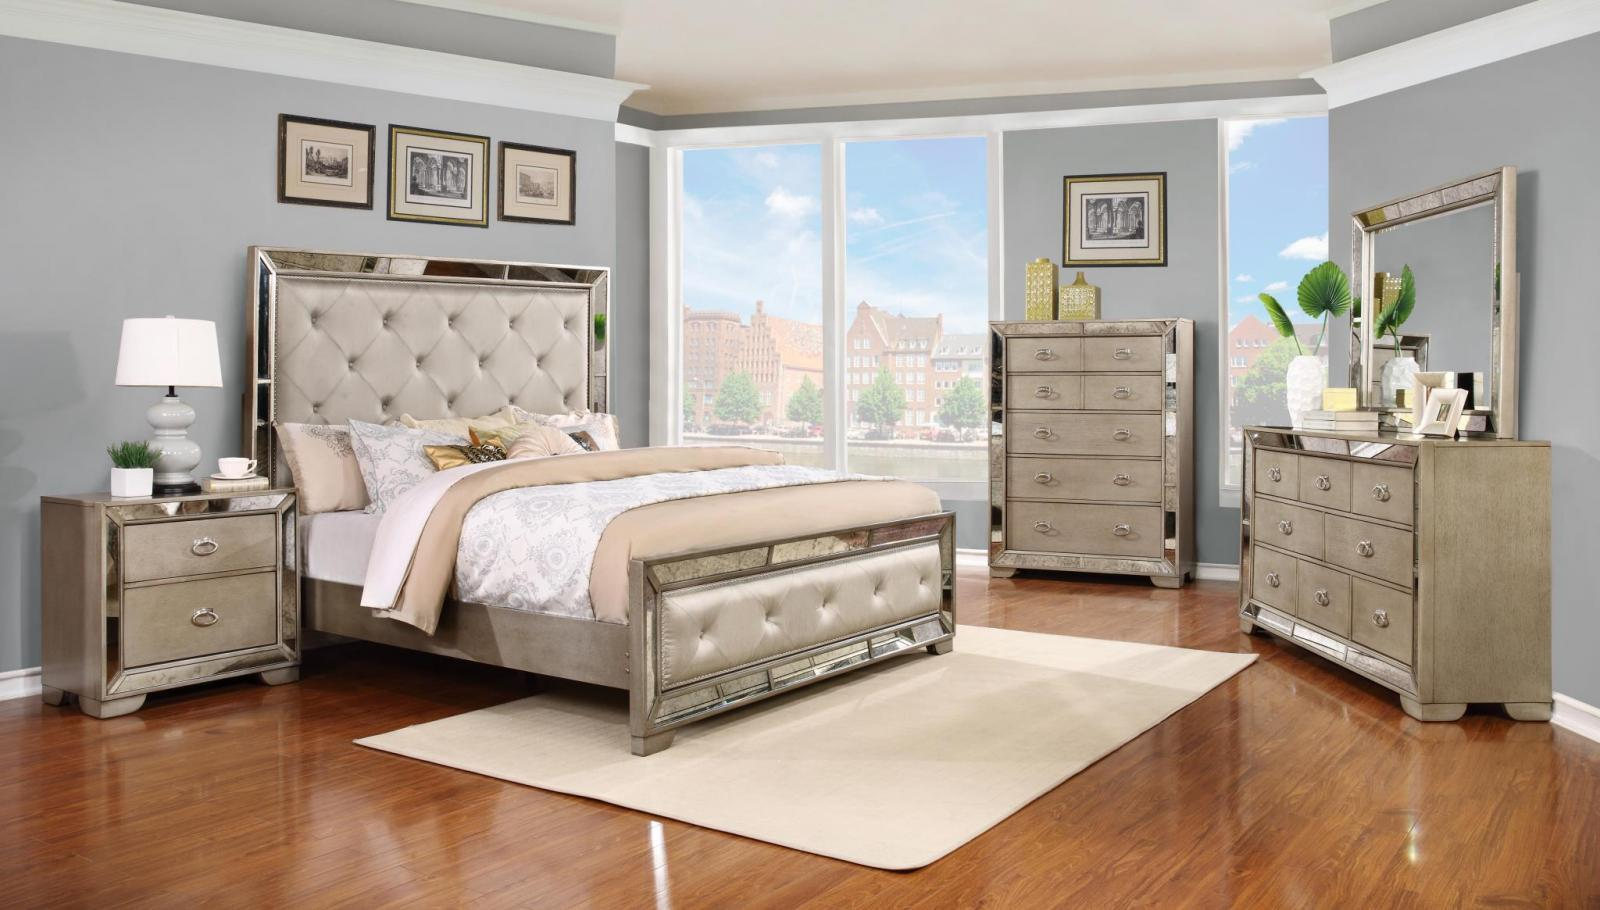 Queen bedroom suite for sale only 4 left at 65 for Queen bedroom suite for sale